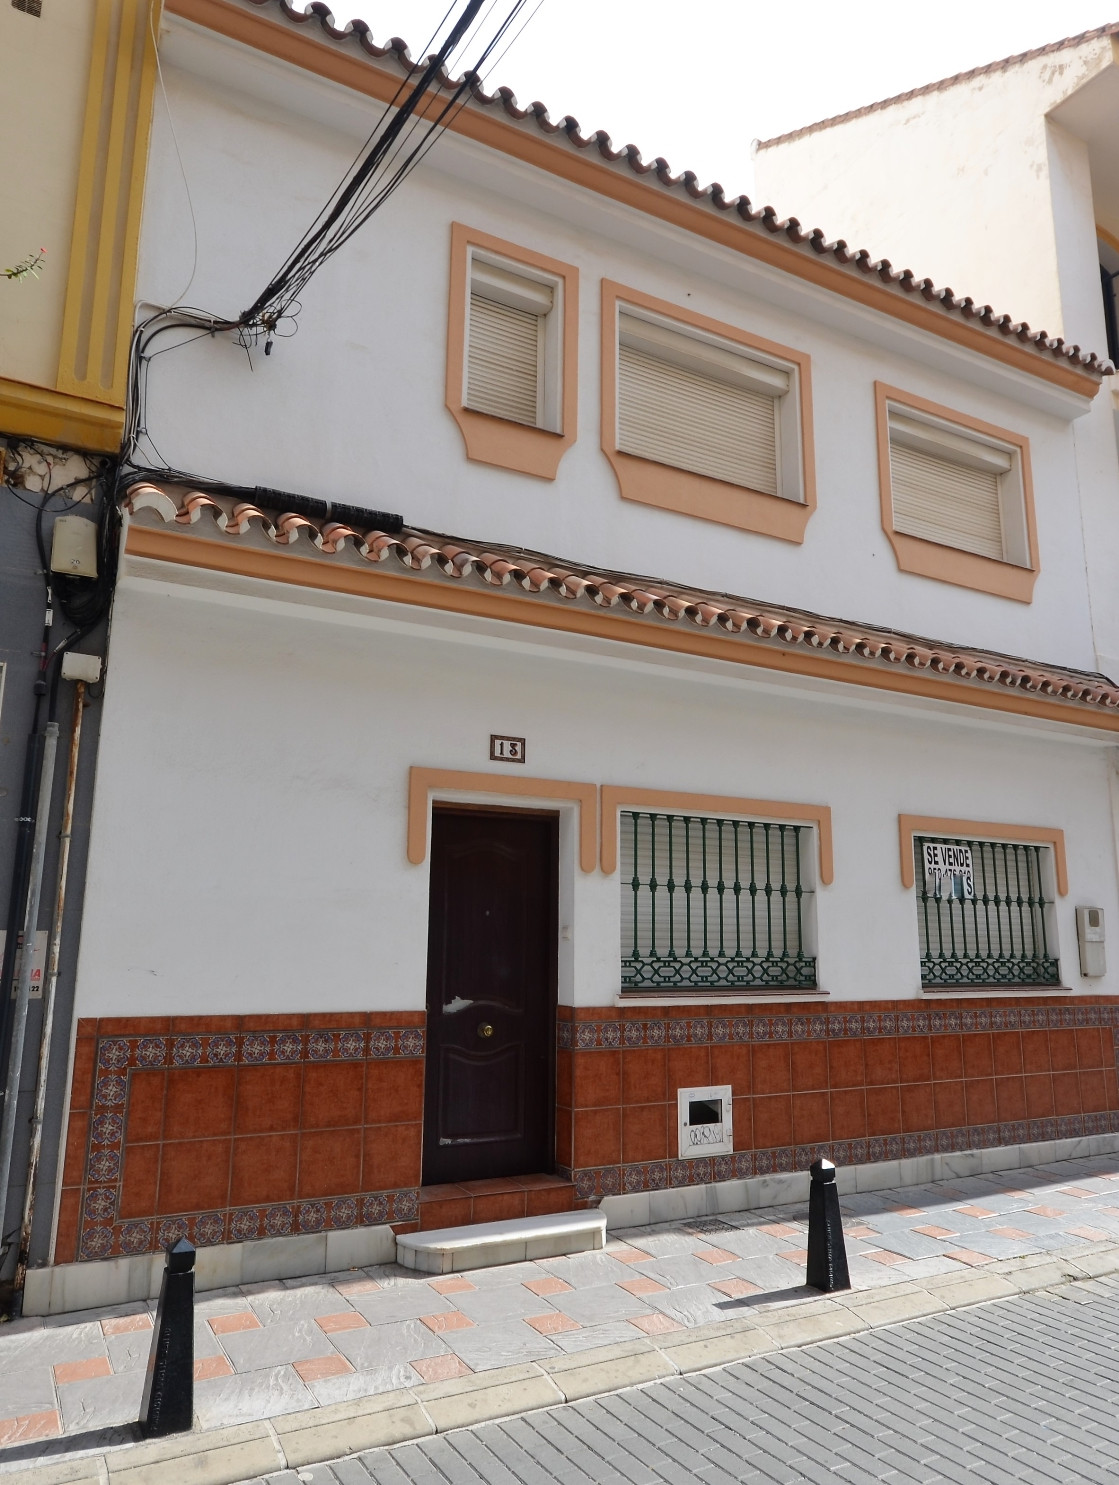 Detached house fantastically located in the heart of Fuengirola within walking distance to all the a,Spain